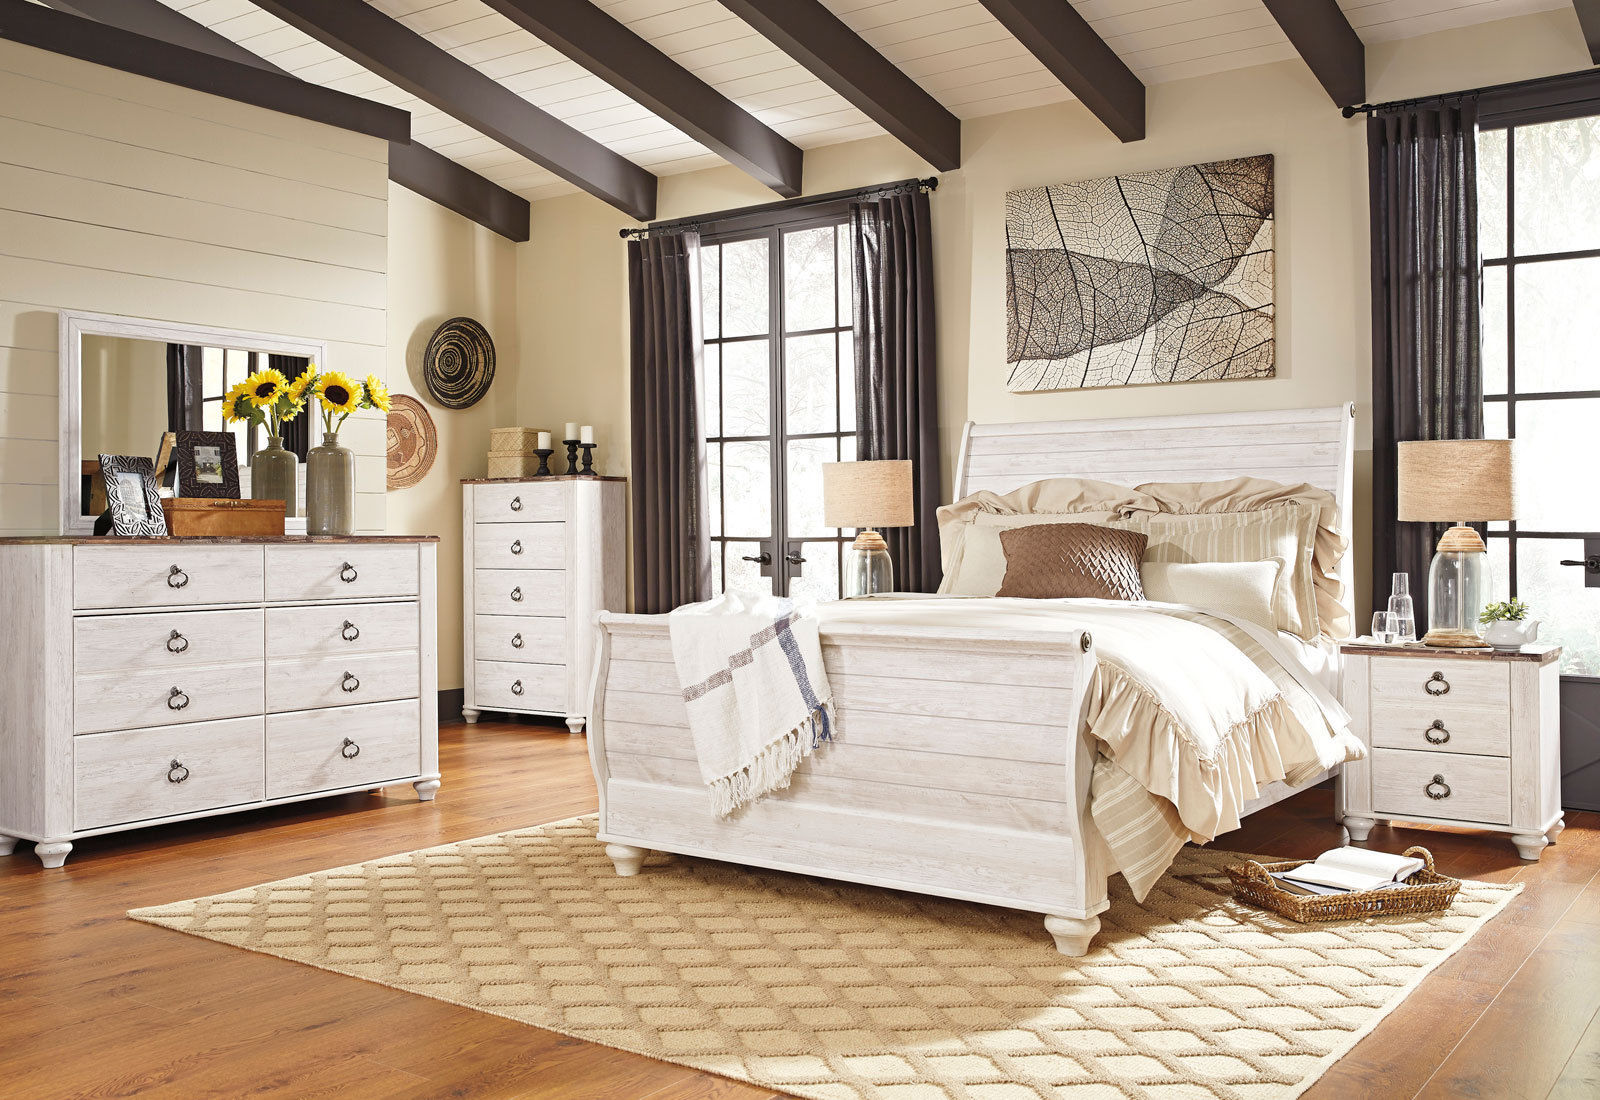 New traditional cottage white finish 5 piece bedroom set w - 5 piece queen sleigh bedroom set ...